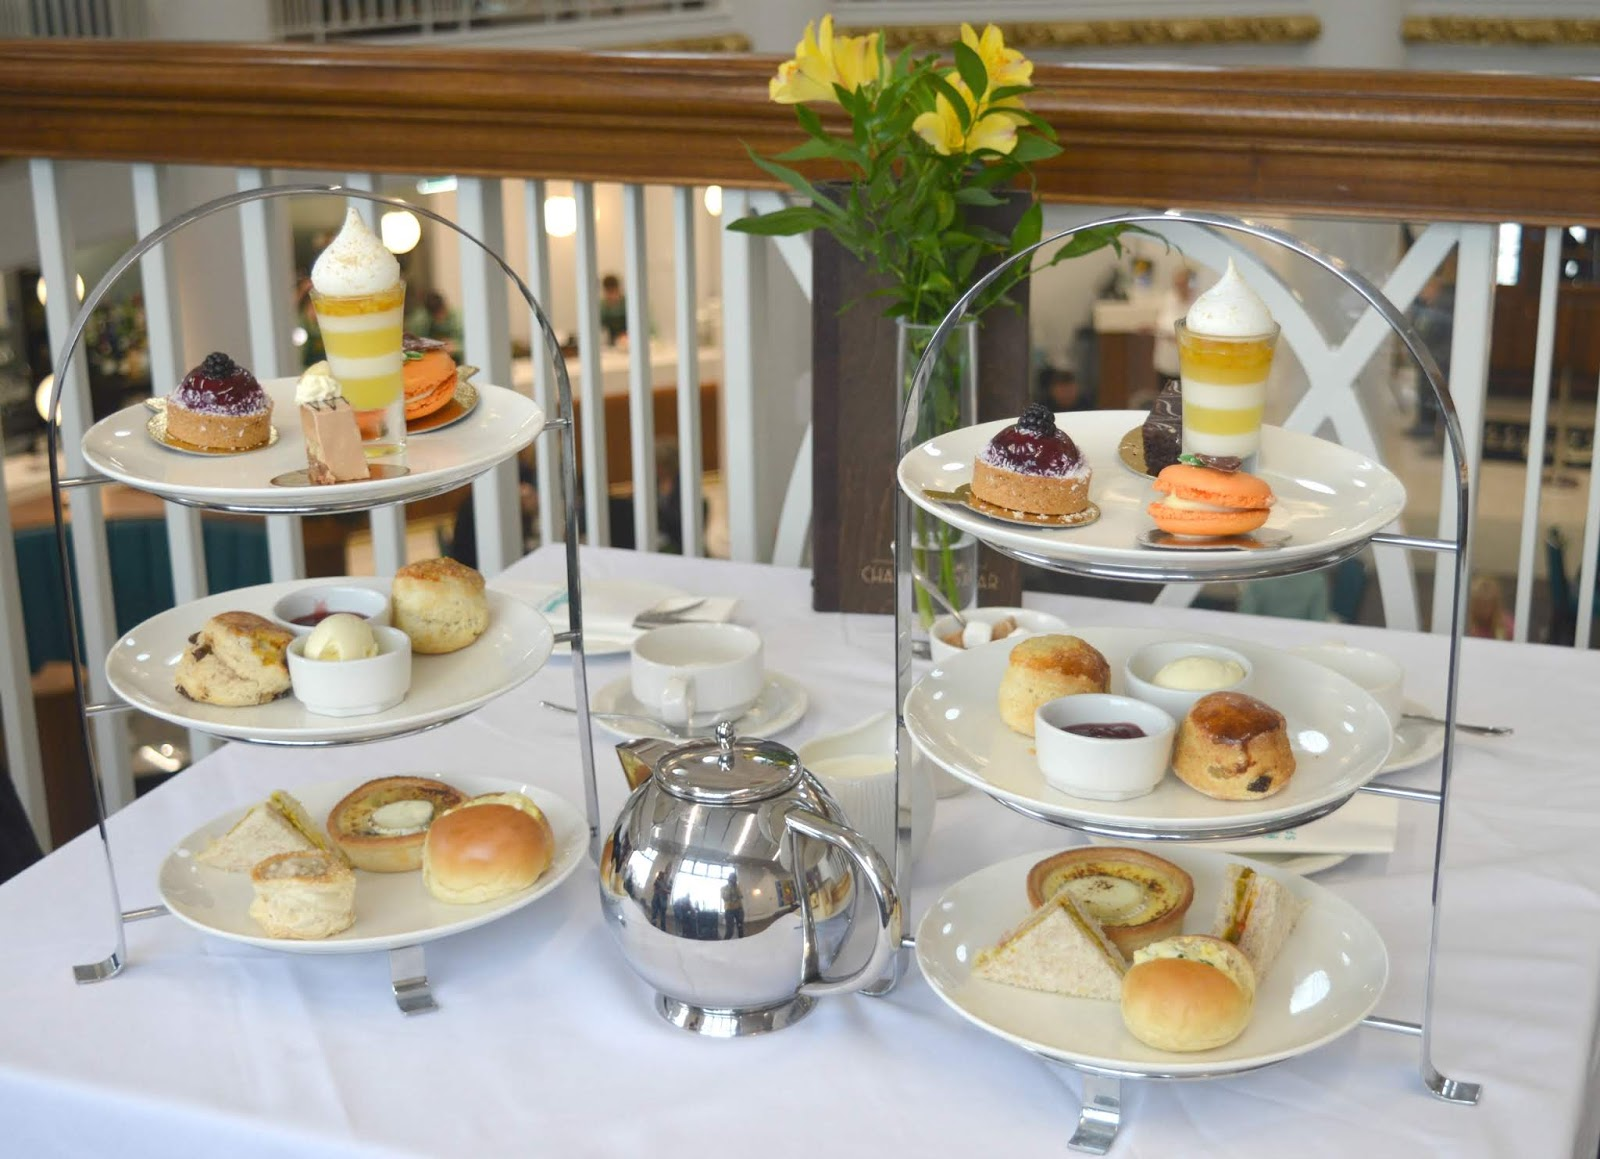 Guide to Spanish City, Whitley Bay - Afternoon Tea